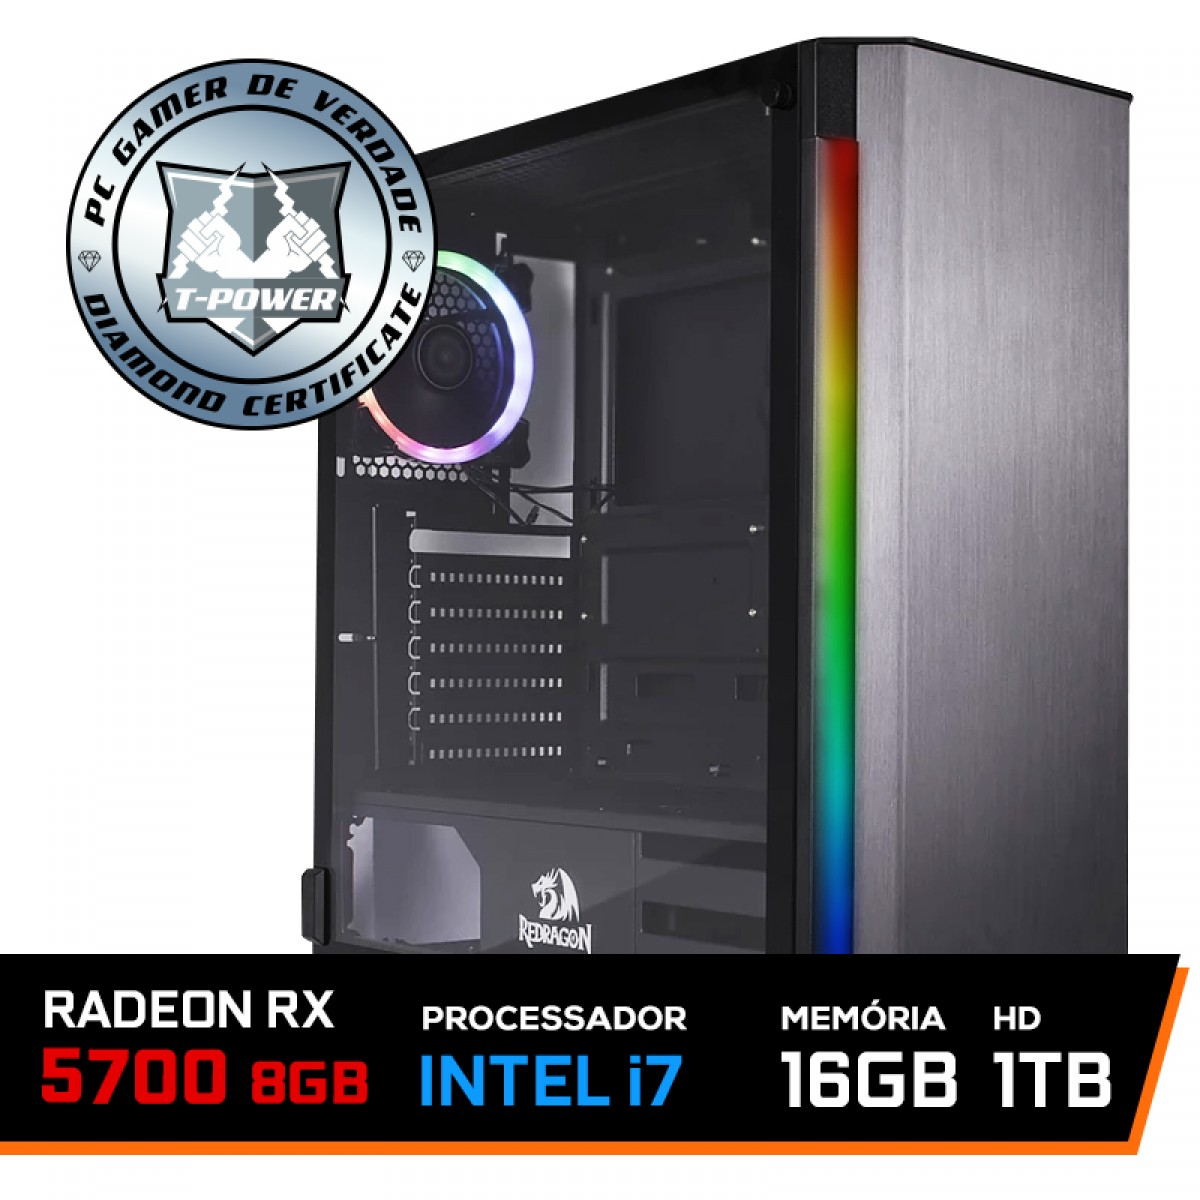 PC Gamer T-Power Captain Lvl-1 Intel I7 9700KF 3.60GHz / Radeon RX 5700 8GB / 16GB DDR4 / HD 1TB / 600W